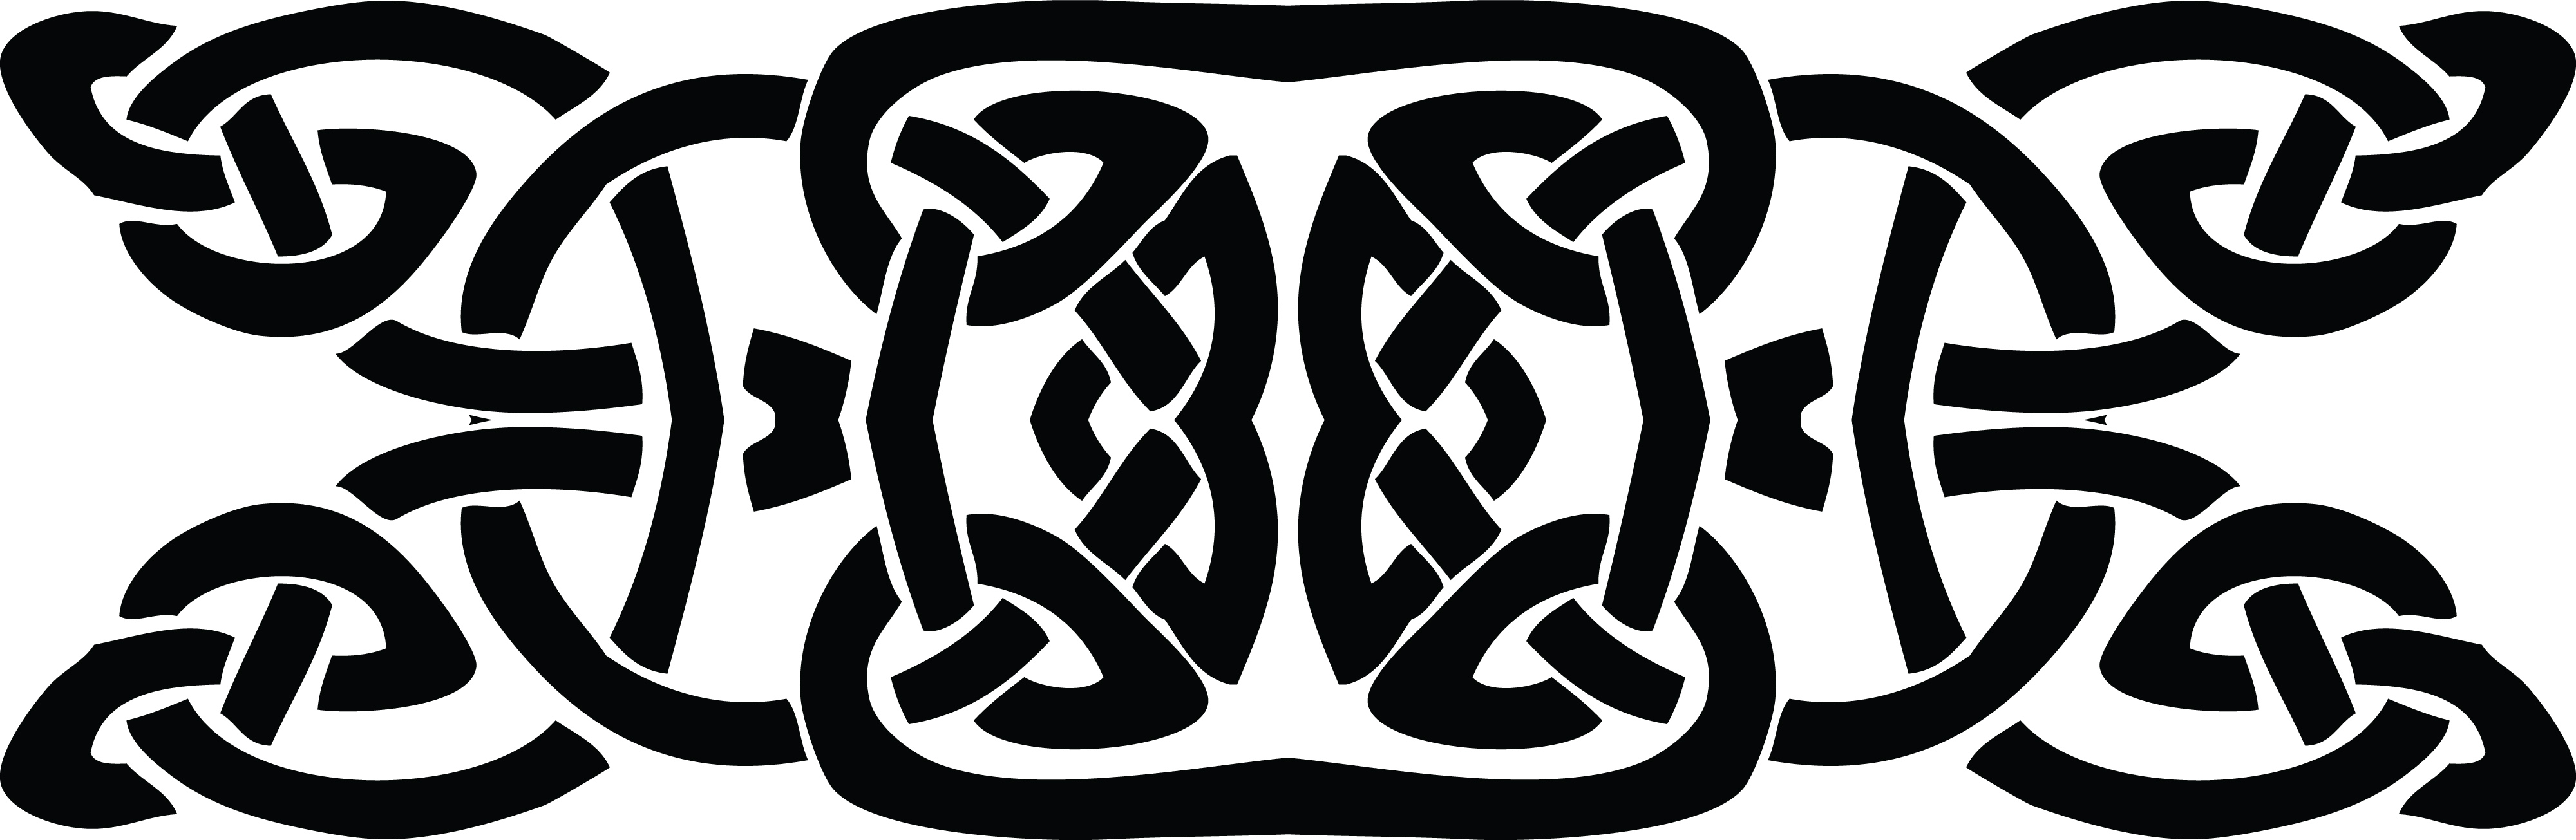 Free Clipart of a black and white celtic knot border.